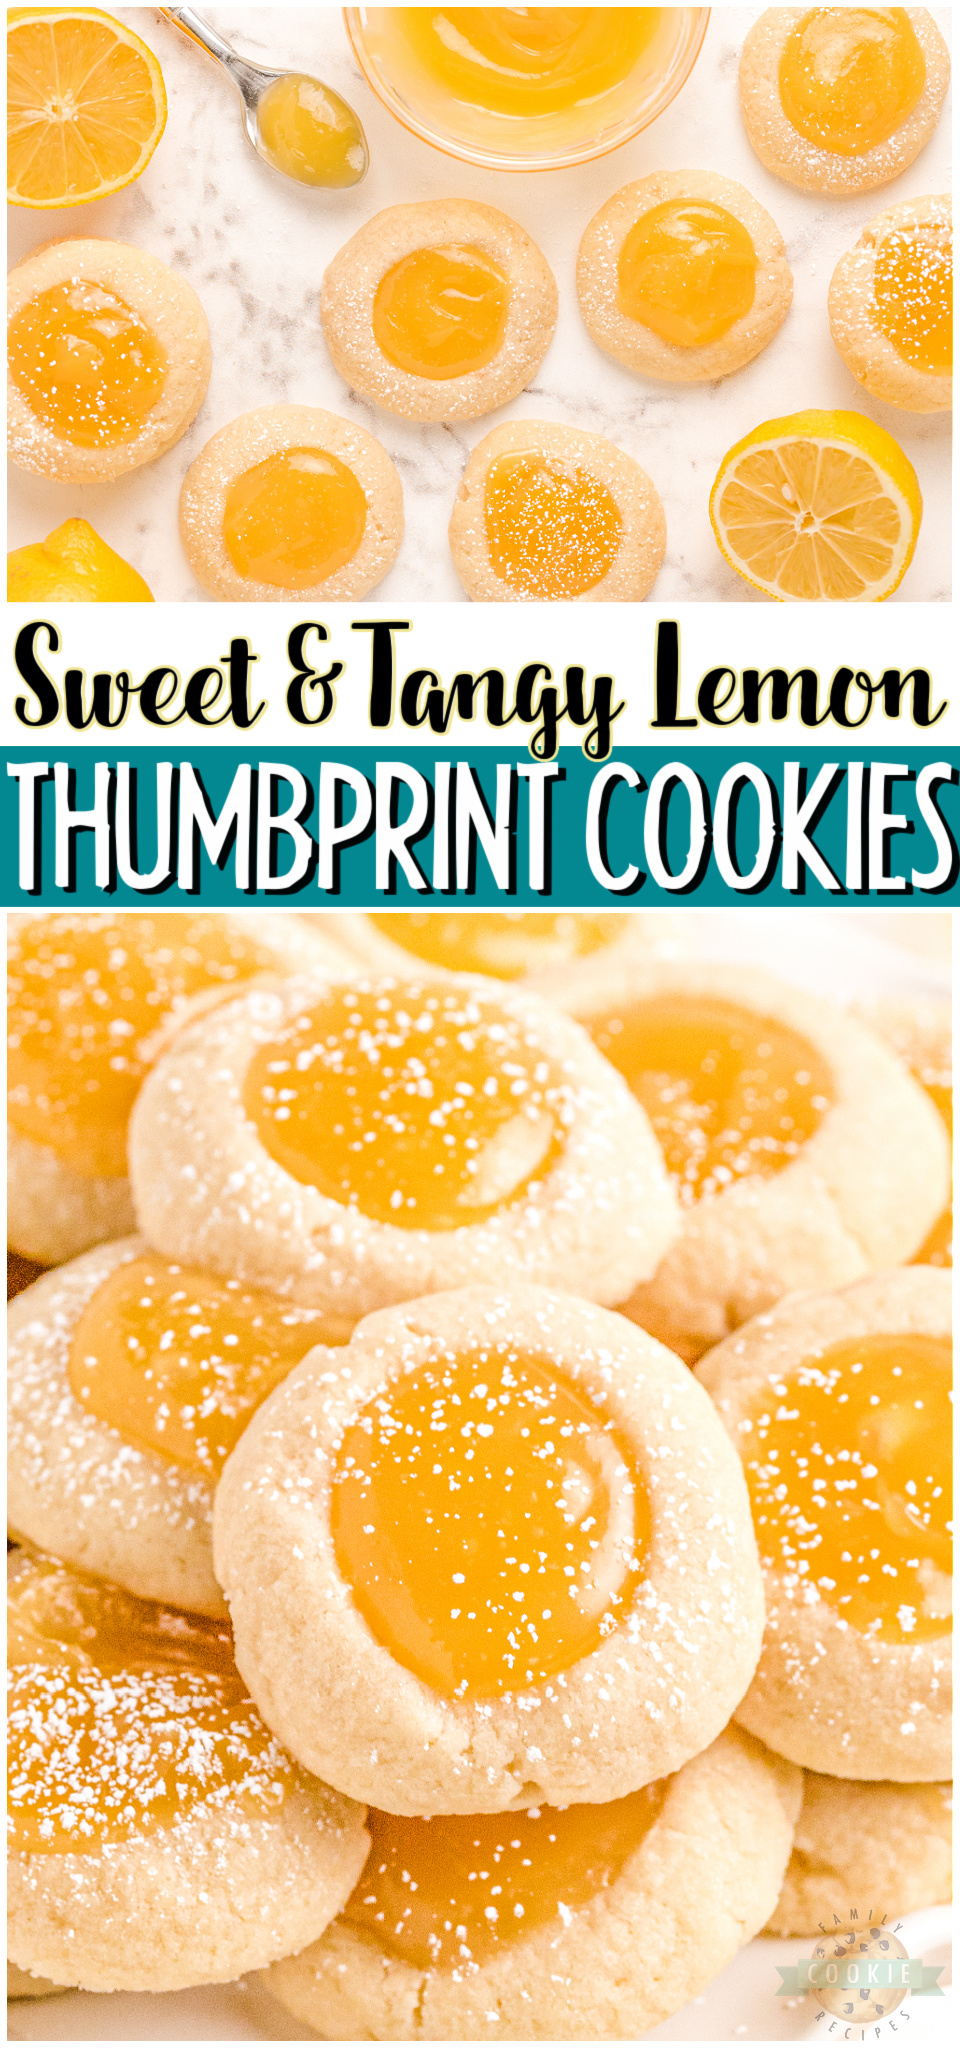 Lemon thumbprint cookies made with buttery soft cookies & filled with creamy lemon curd! Perfectly sweet & tart thumbprint cookies with bright lemon flavor.#lemon #cookies #thumbprints #baking #dessert #easyrecipe from FAMILY COOKIE RECIPES via @familycookierecipes